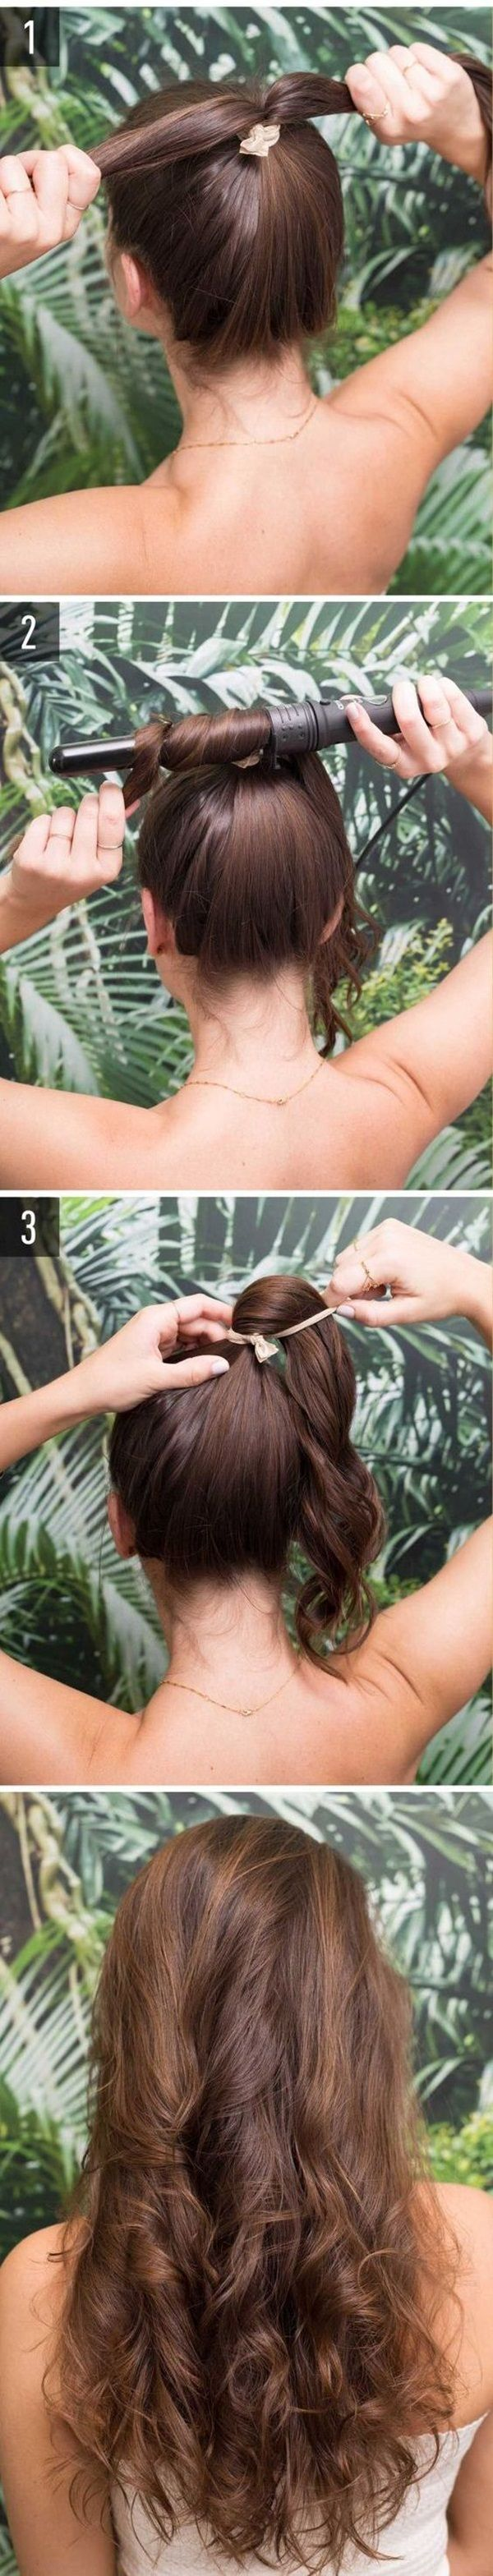 40 Easy Hairstyles For Schools To Try In 2016 Easy Hairstyles School And Easy